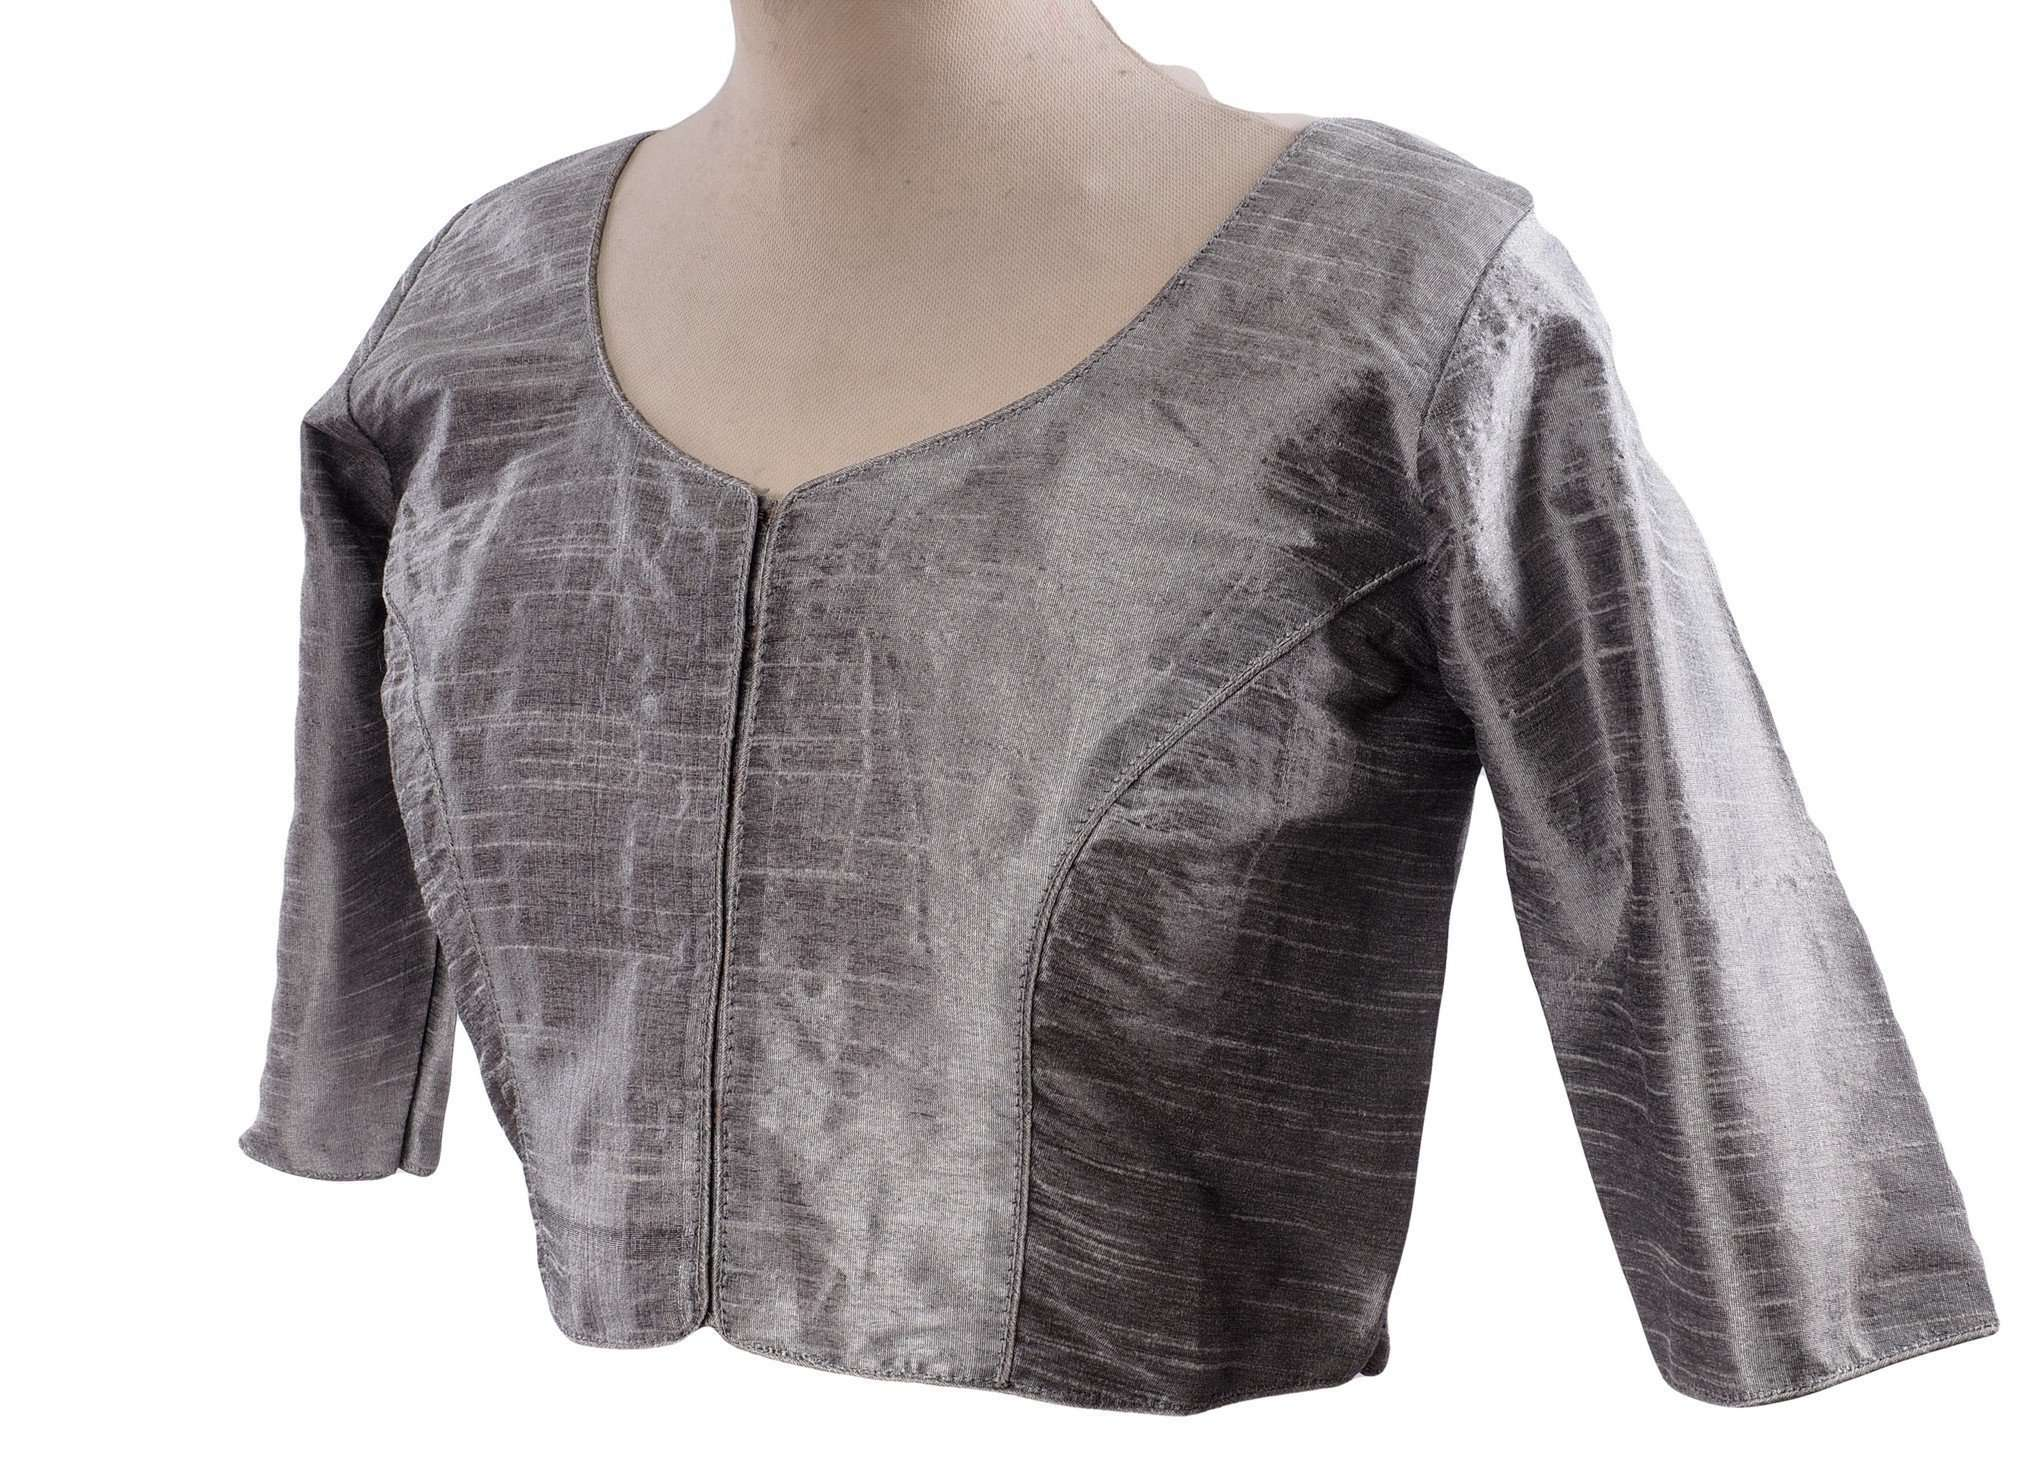 "Silver Grey Dupion Silk Saree blouse - size 34""-52"" - S, M, L, XL, XXL, XXXL and XXXXL - Bollywood - Prachy Creations"